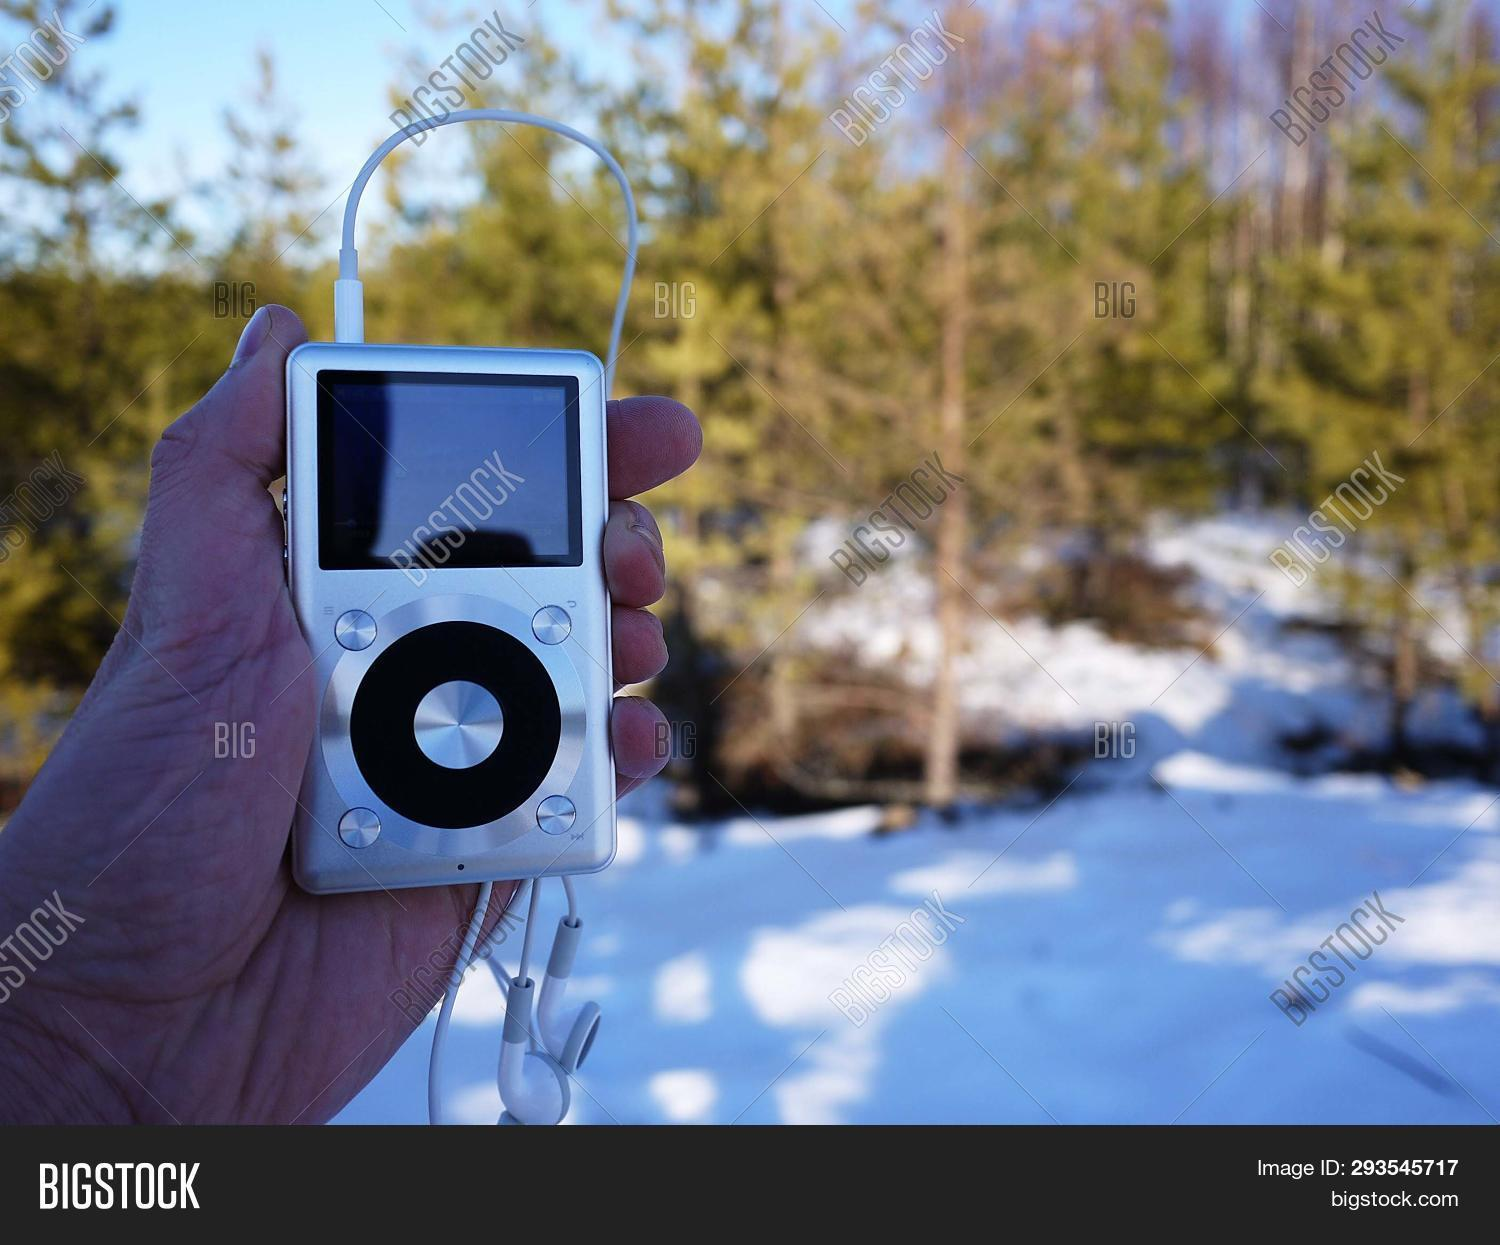 Personal Mp3 Player Image & Photo (Free Trial) | Bigstock